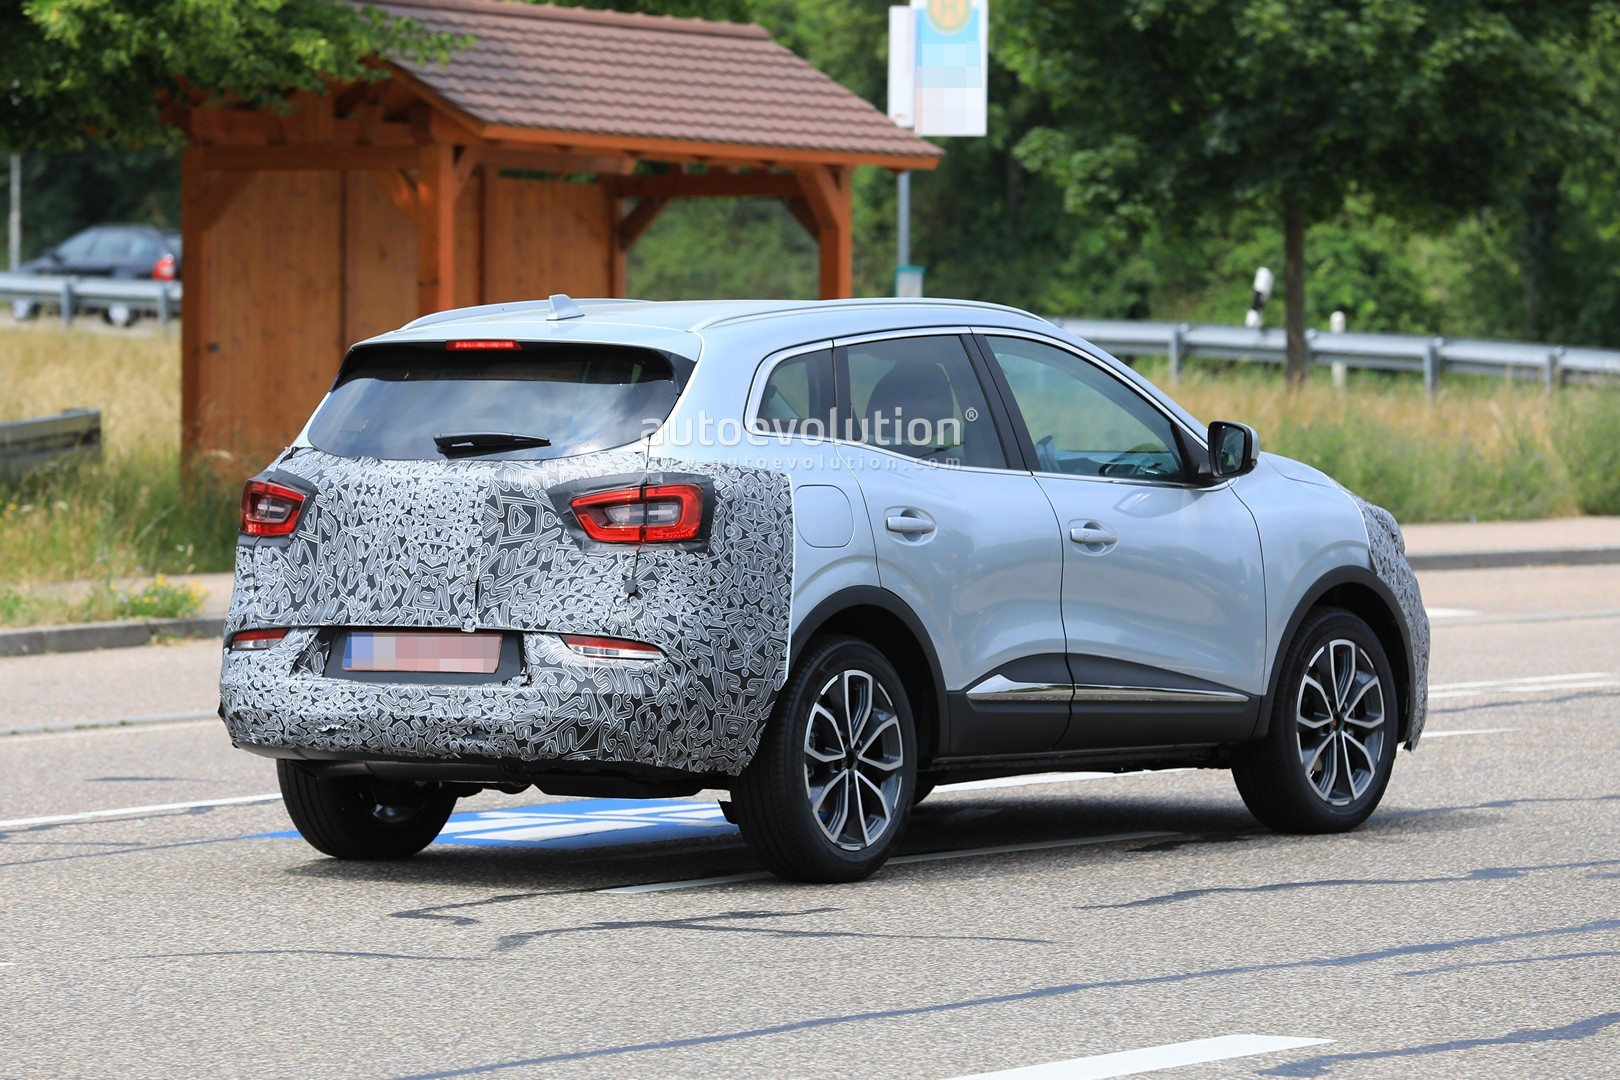 2018 - [Renault] Kadjar restylé  - Page 9 2019-renault-kadjar-facelift-spied-with-new-front-end-will-debut-in-september_12